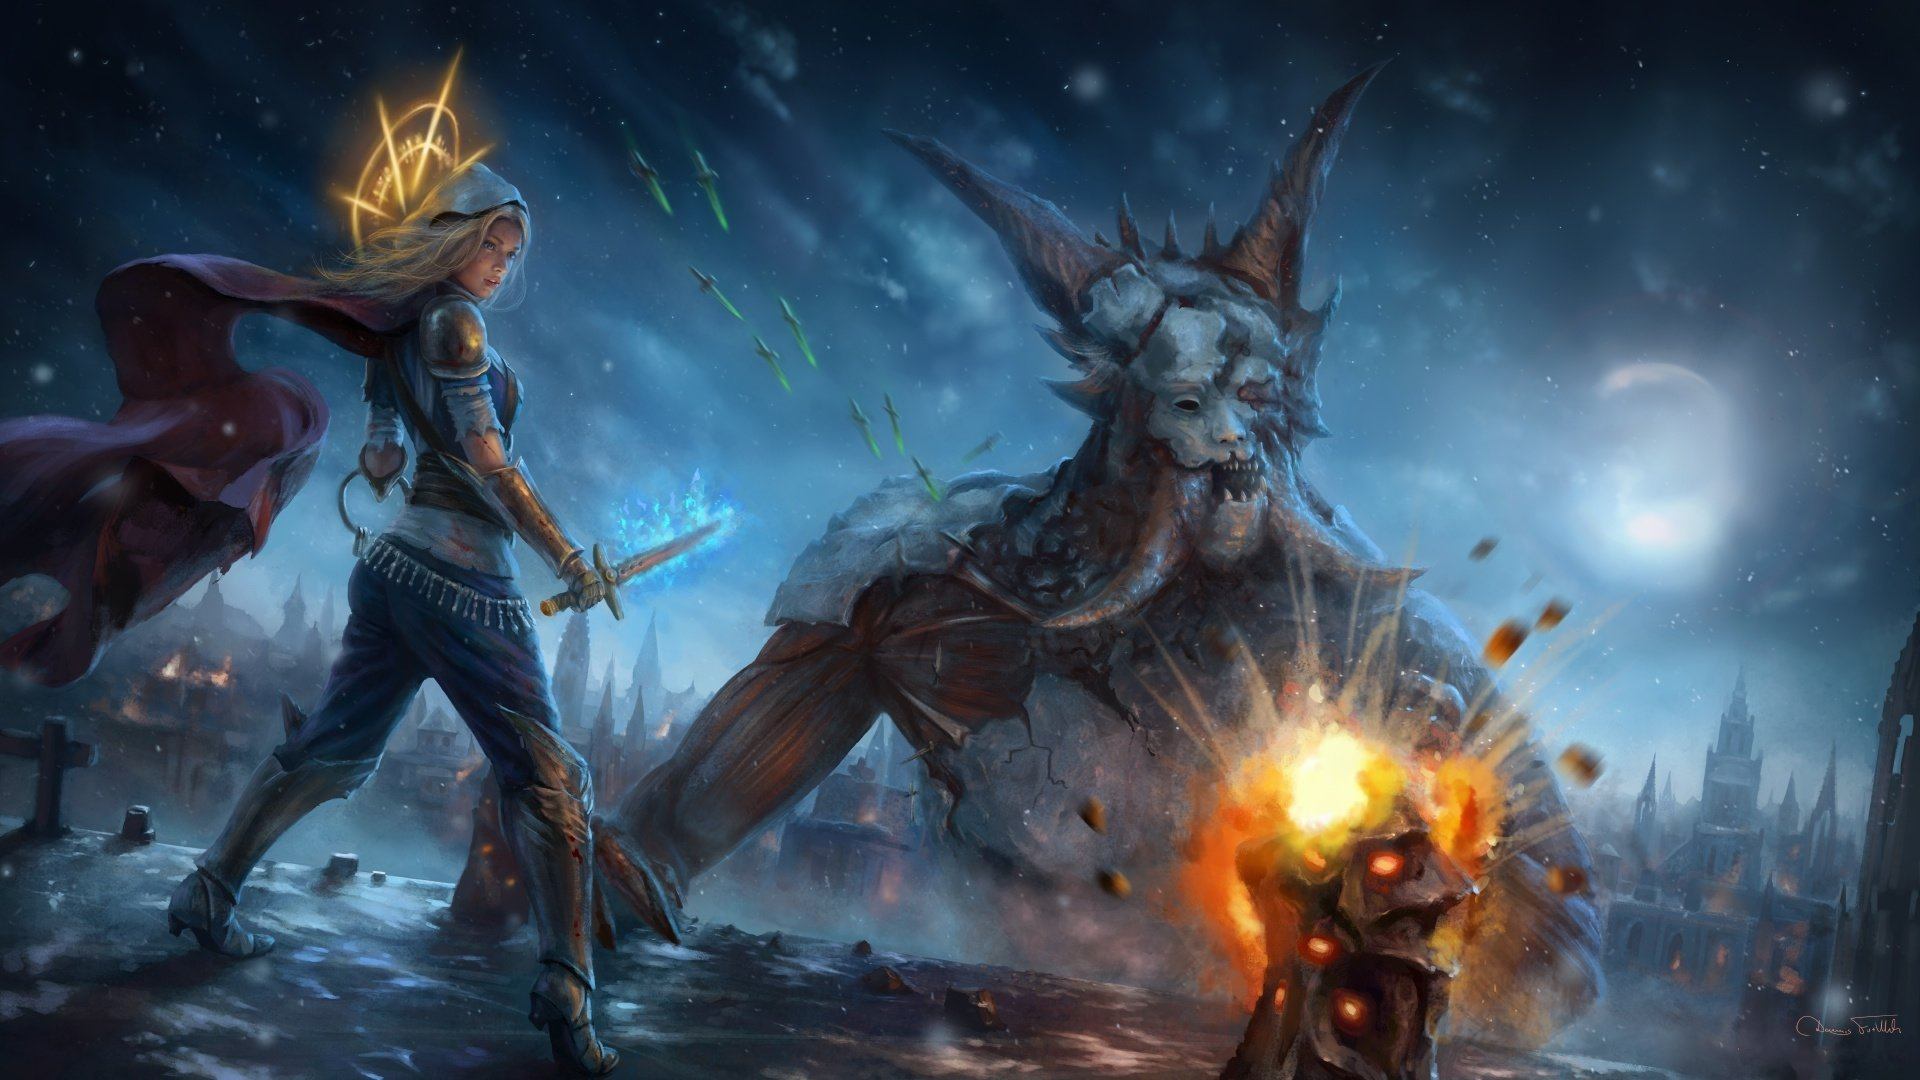 Path of Exile Beginner Guide - Learn The Way of the Exile